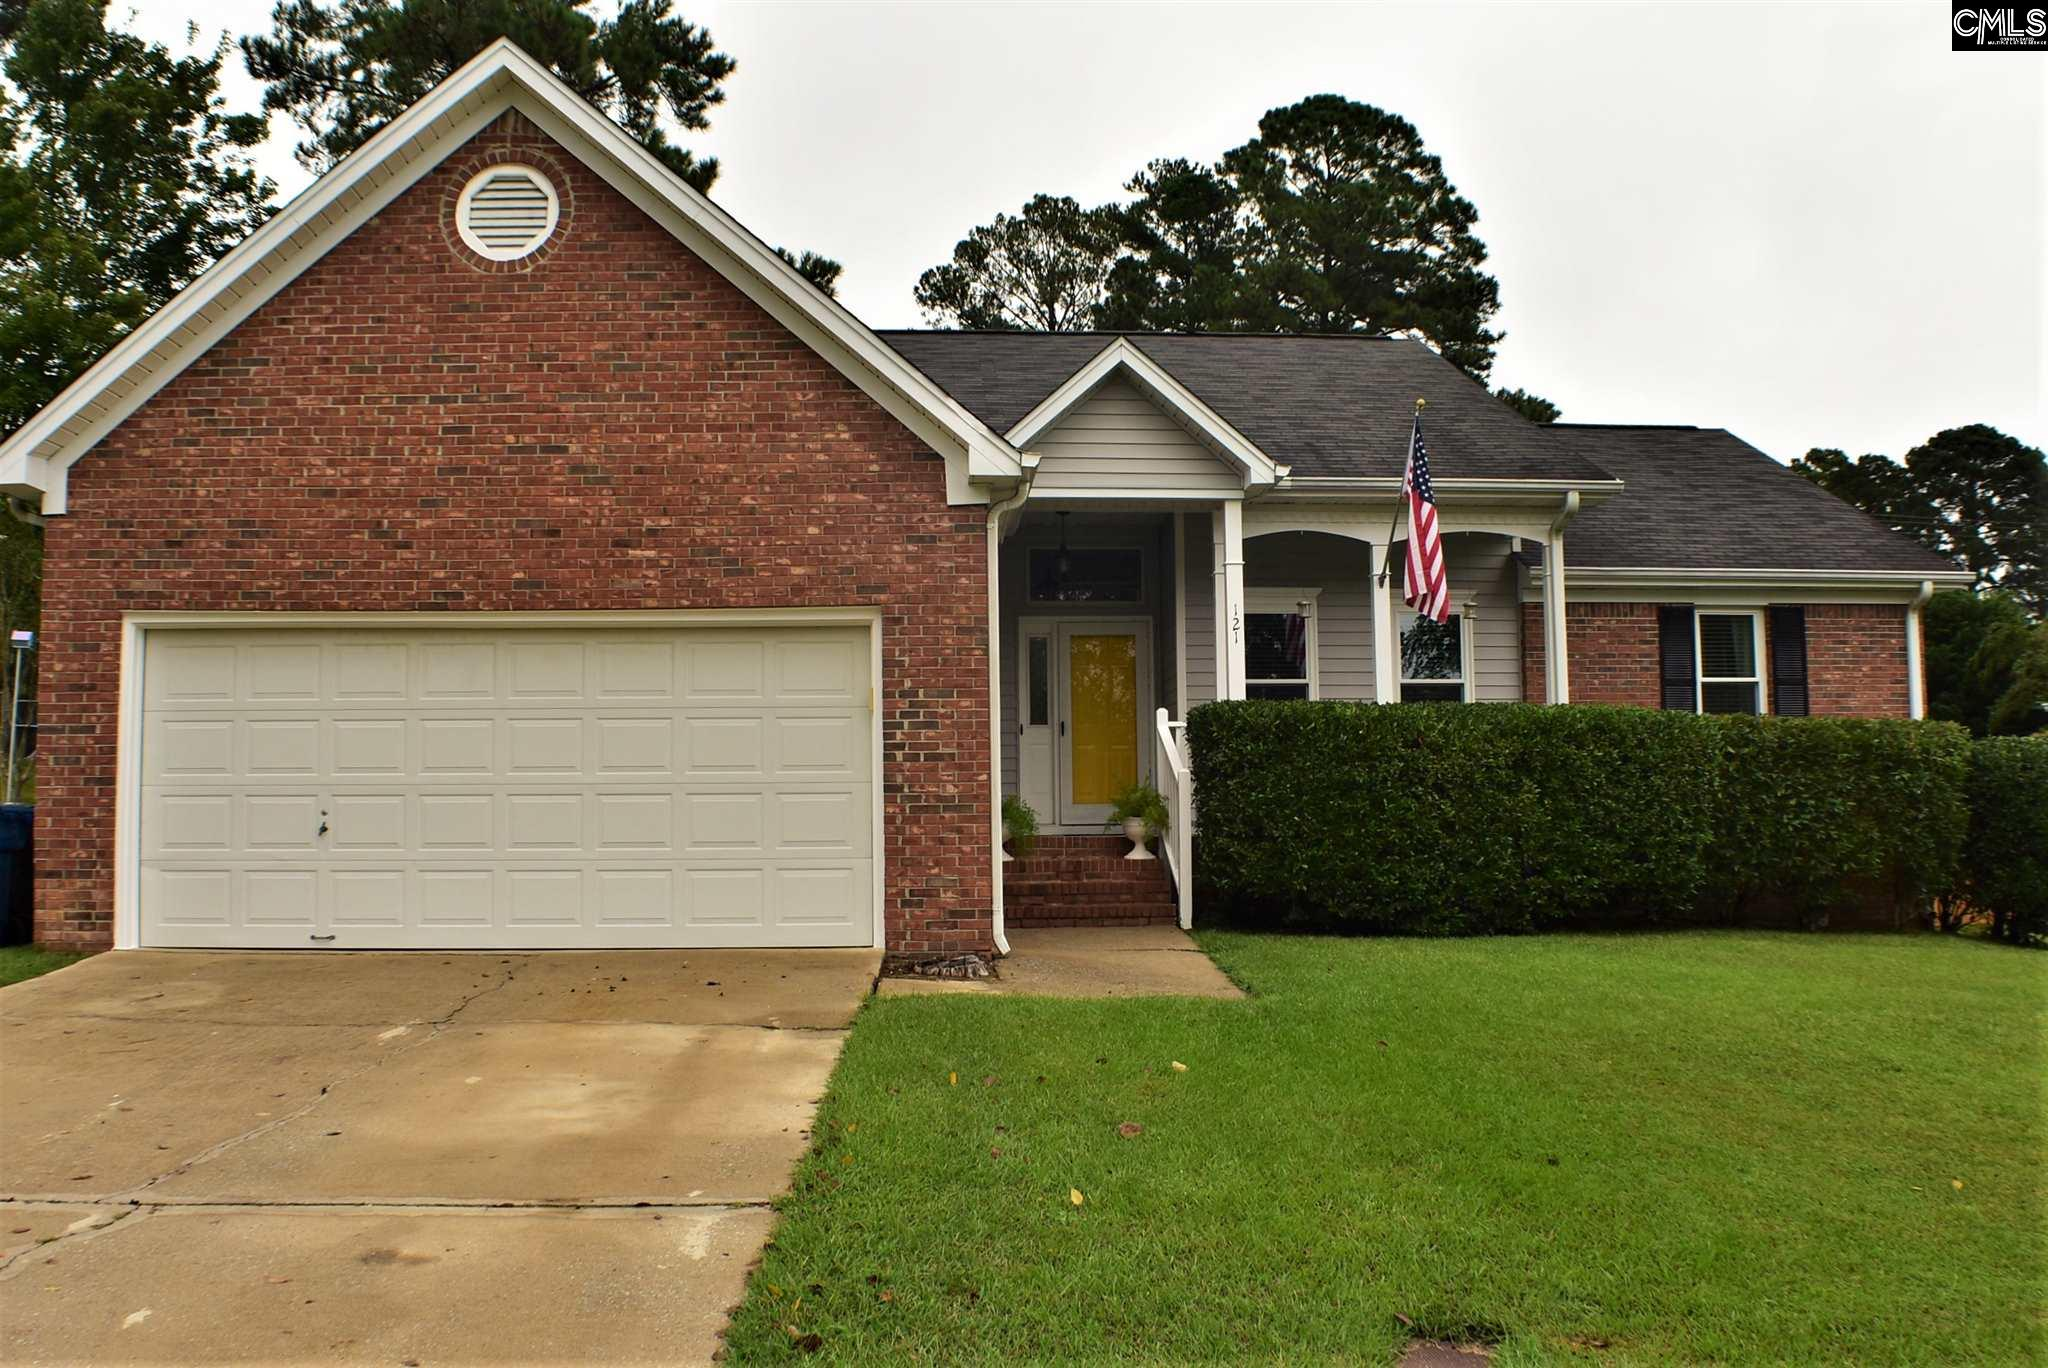 121 Grimsby West Columbia, SC 29170